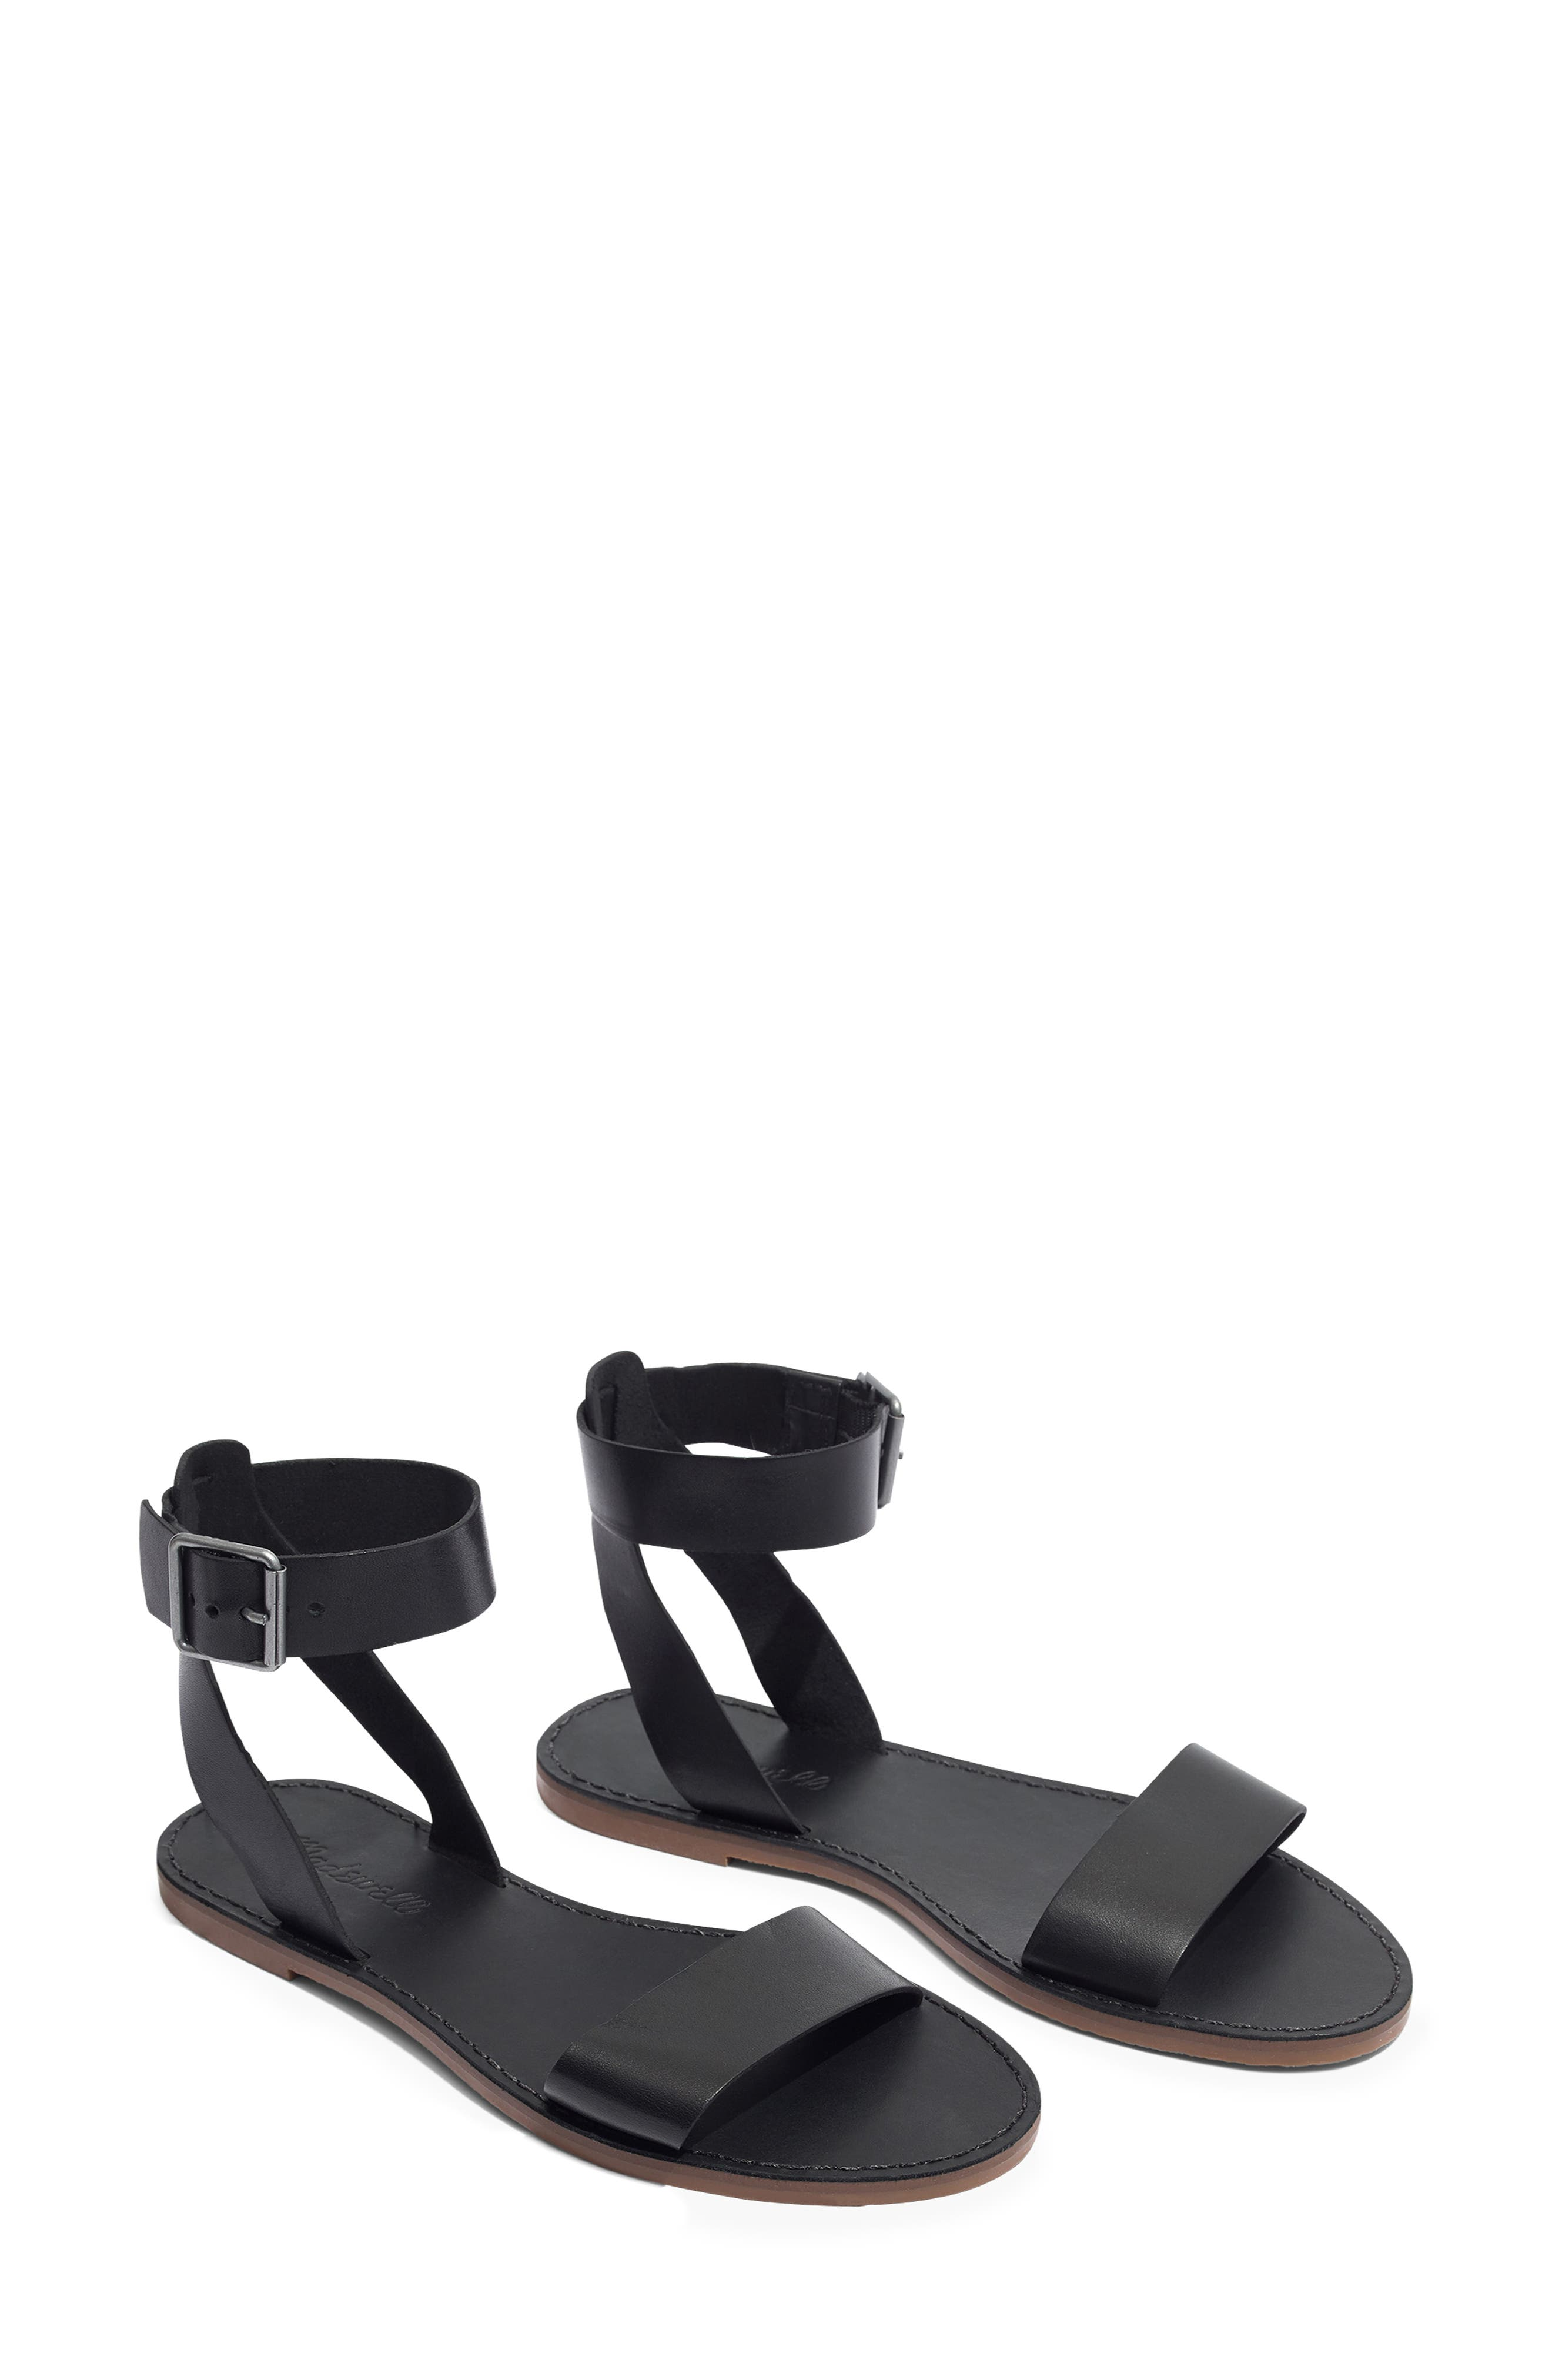 MADEWELL, The Boardwalk Ankle Strap Sandal, Alternate thumbnail 8, color, TRUE BLACK LEATHER